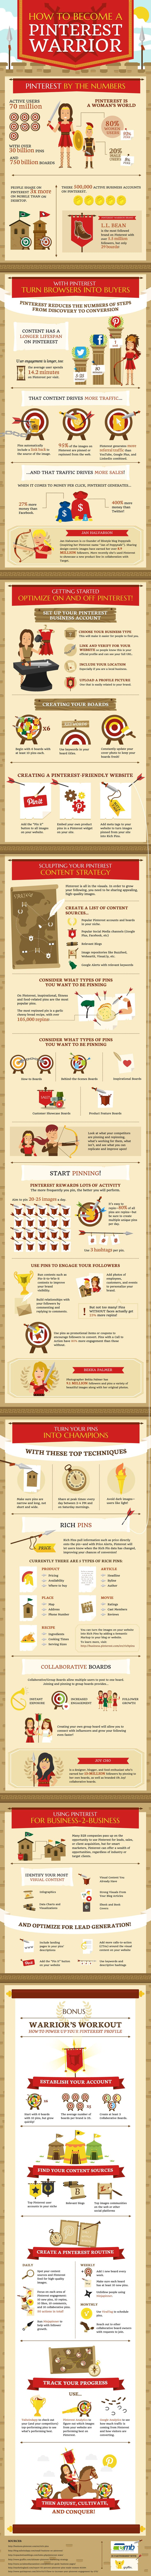 How To use Pinterest for Business : #SocialMedia #Marketing #Pinterest - #infographic #ohmyheartsiegirl